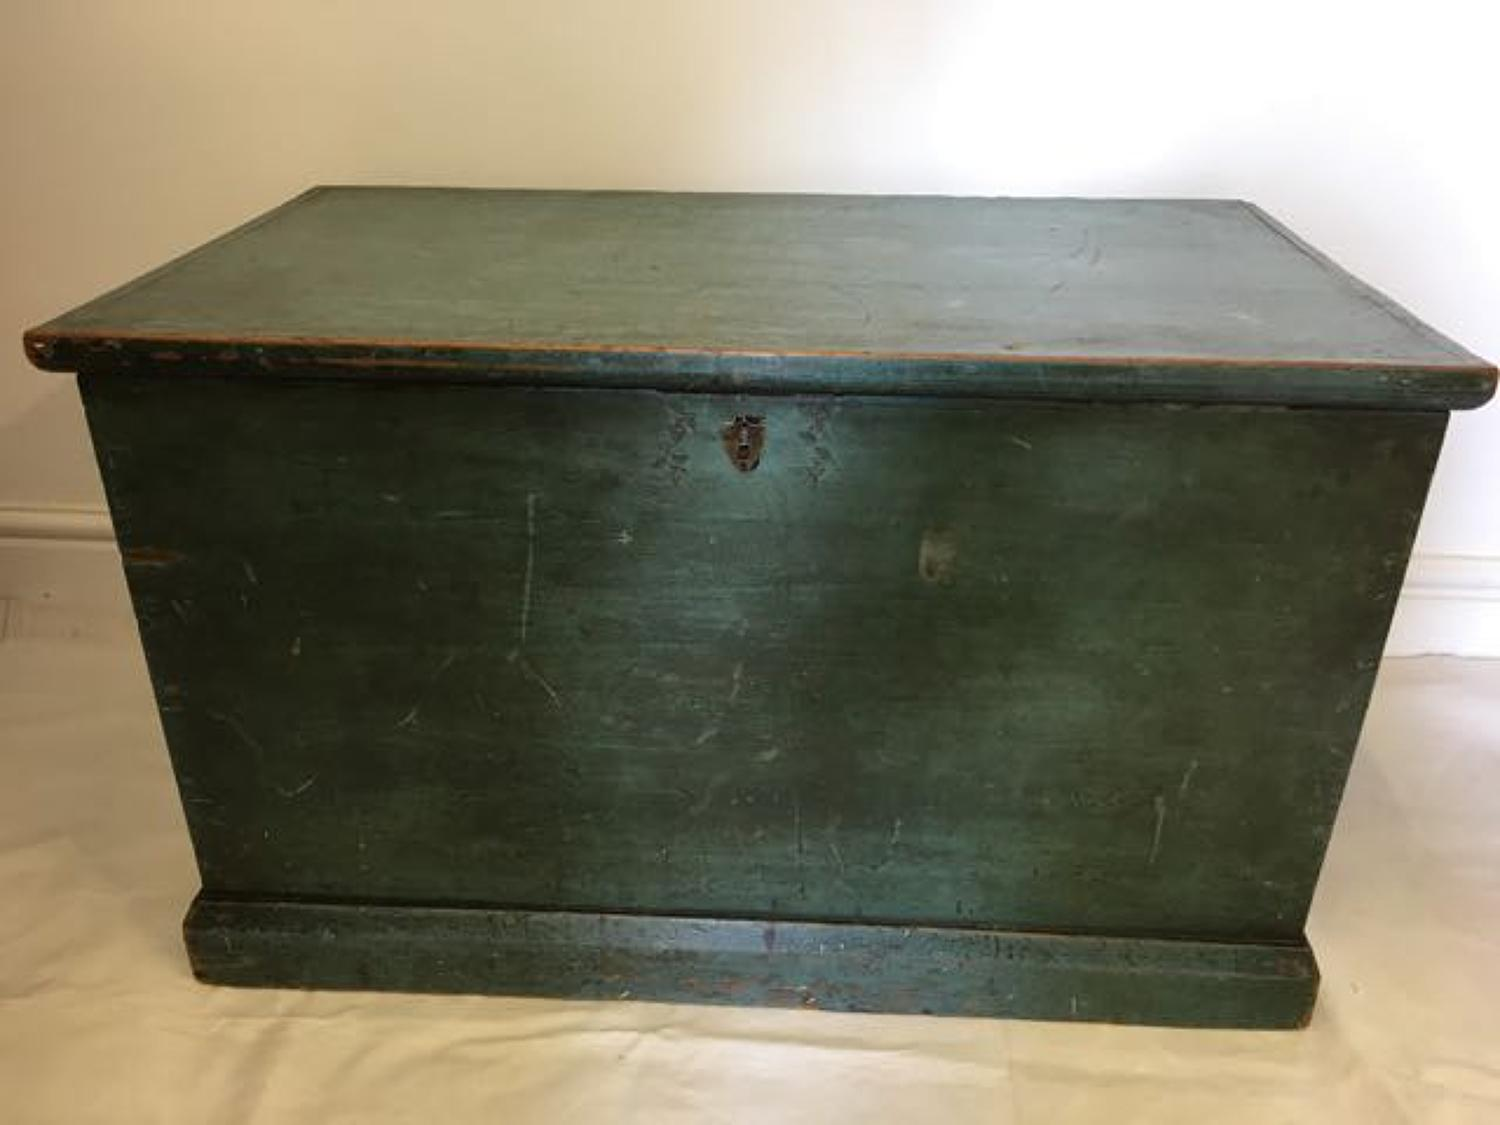 Late 1800's blanket box with original paint